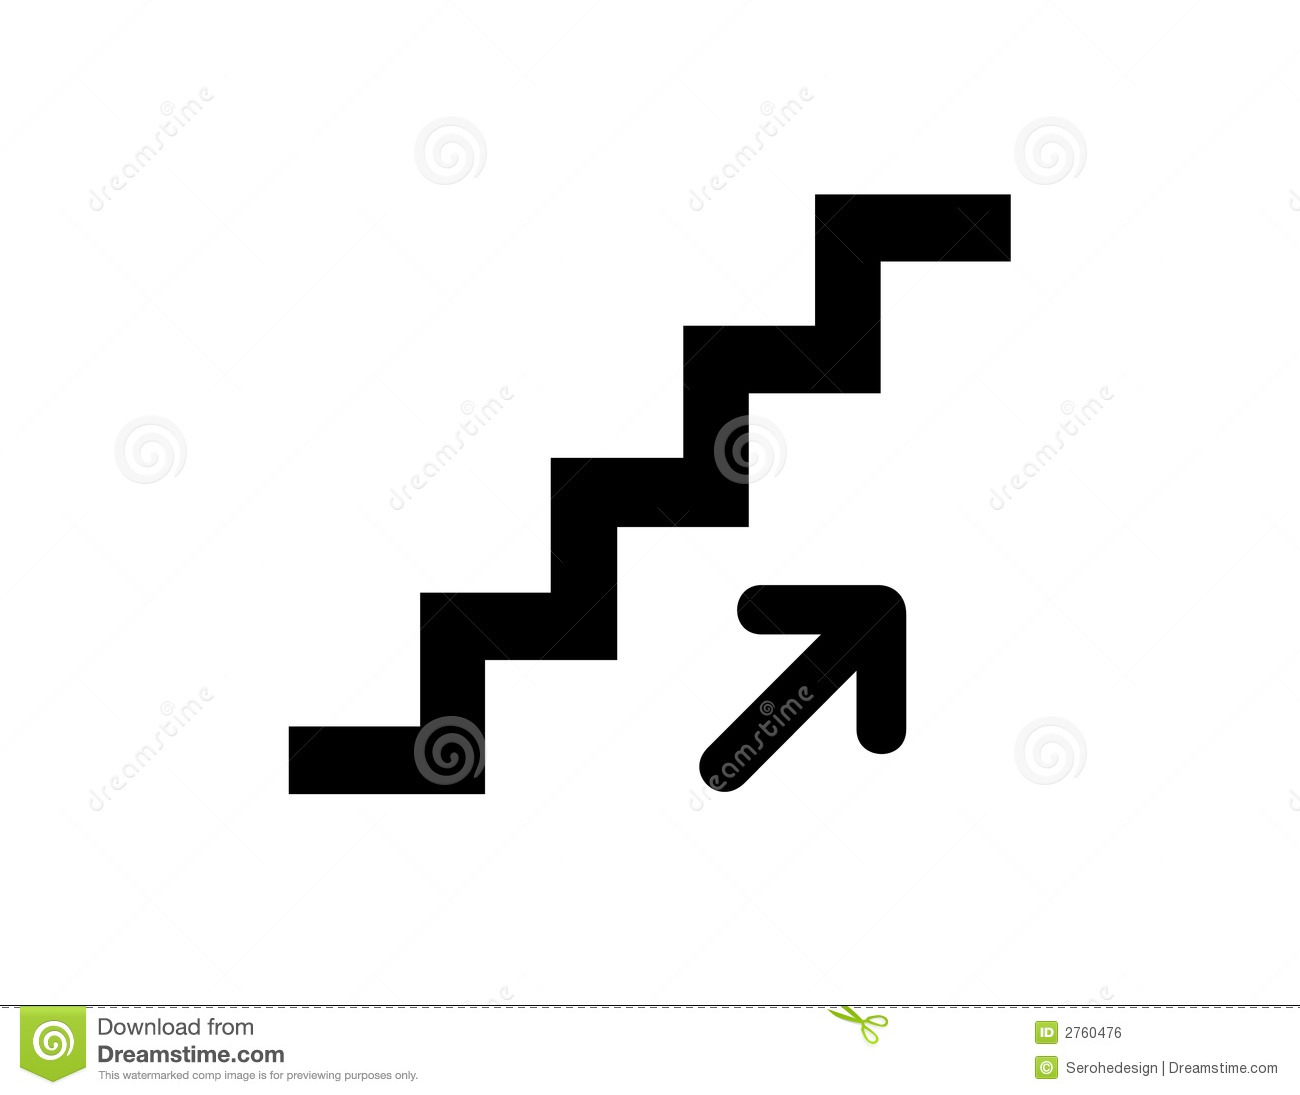 Treppe hinunter clipart png black and white Treppen Stockfotos – 148,906 Treppen Stockbilder, Stockfotografie ... png black and white